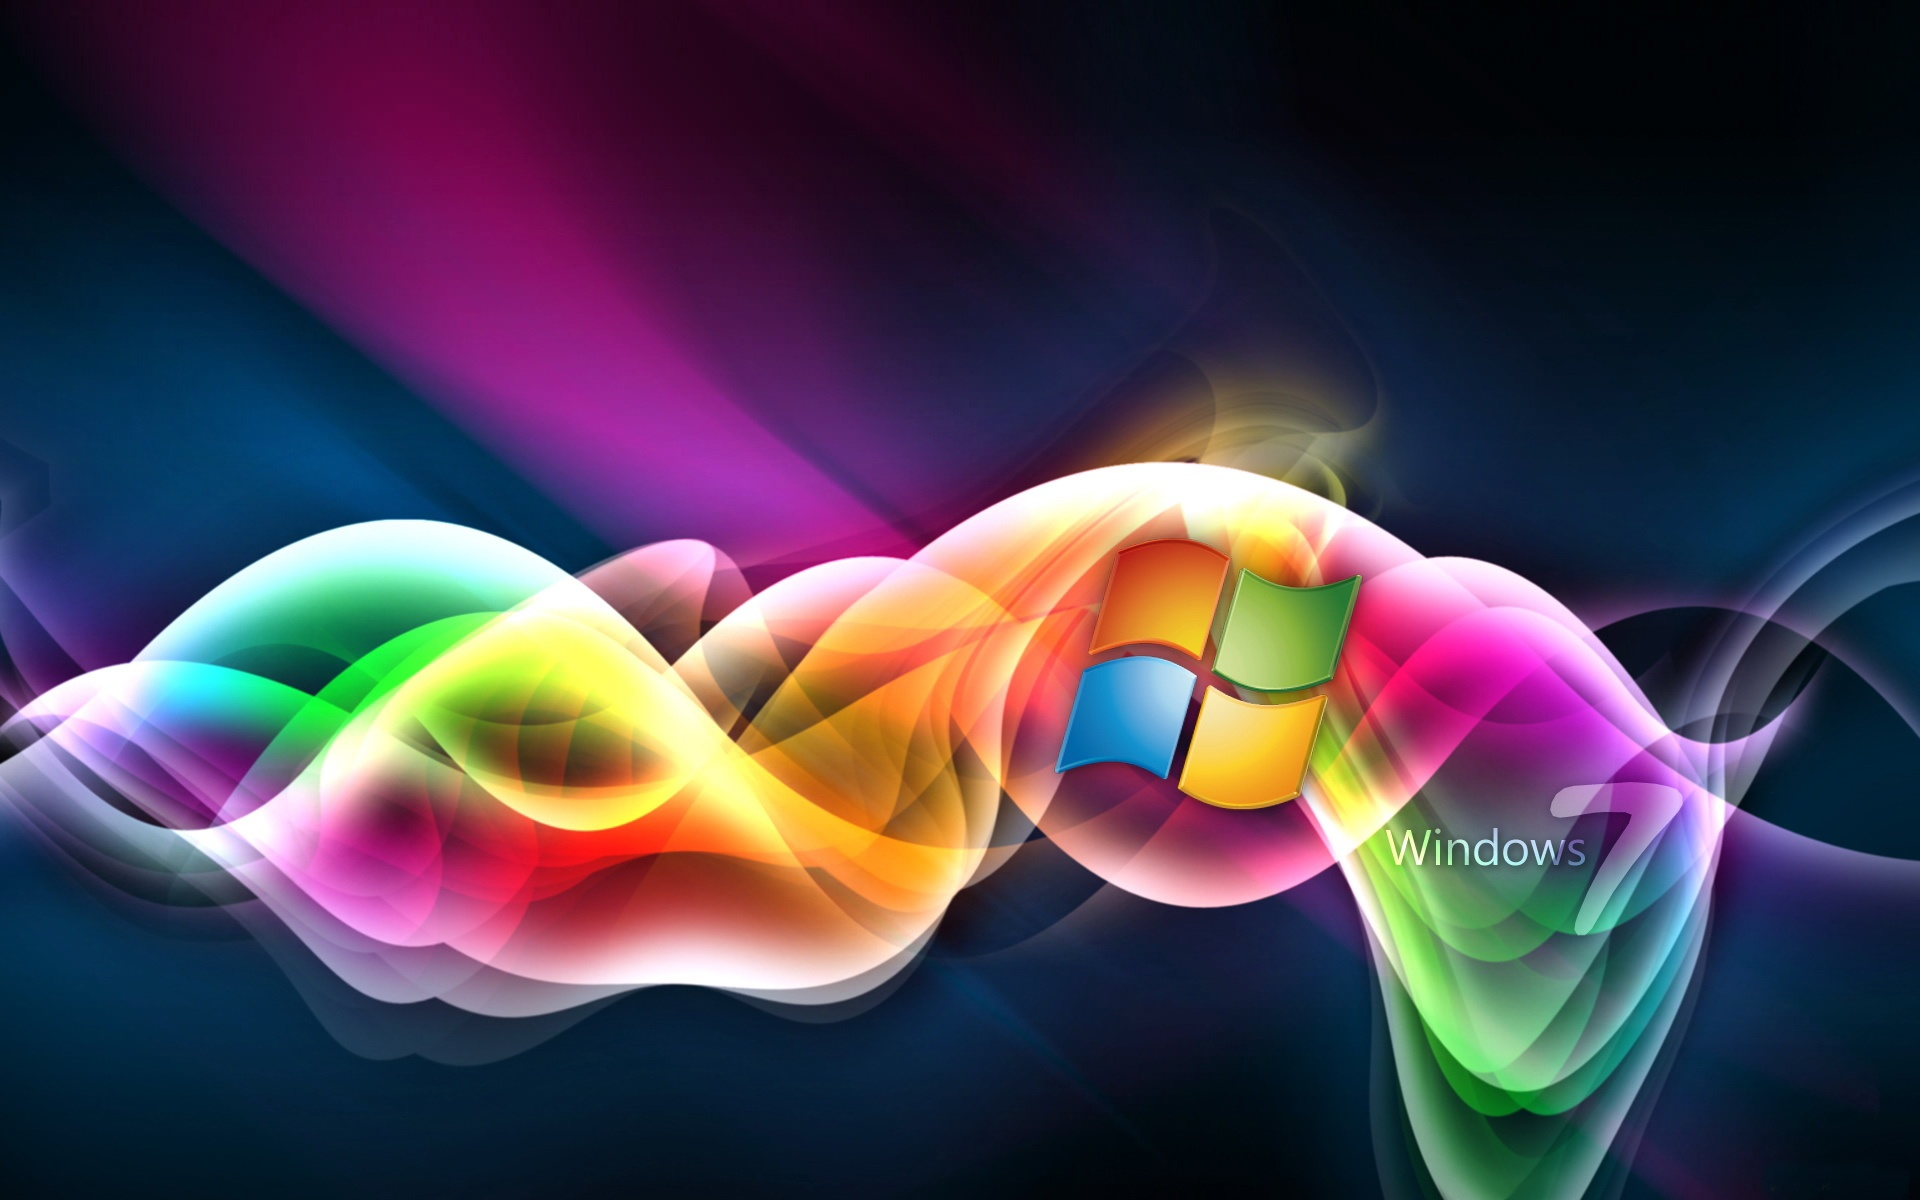 Free Windows 10 Wallpaper Themes